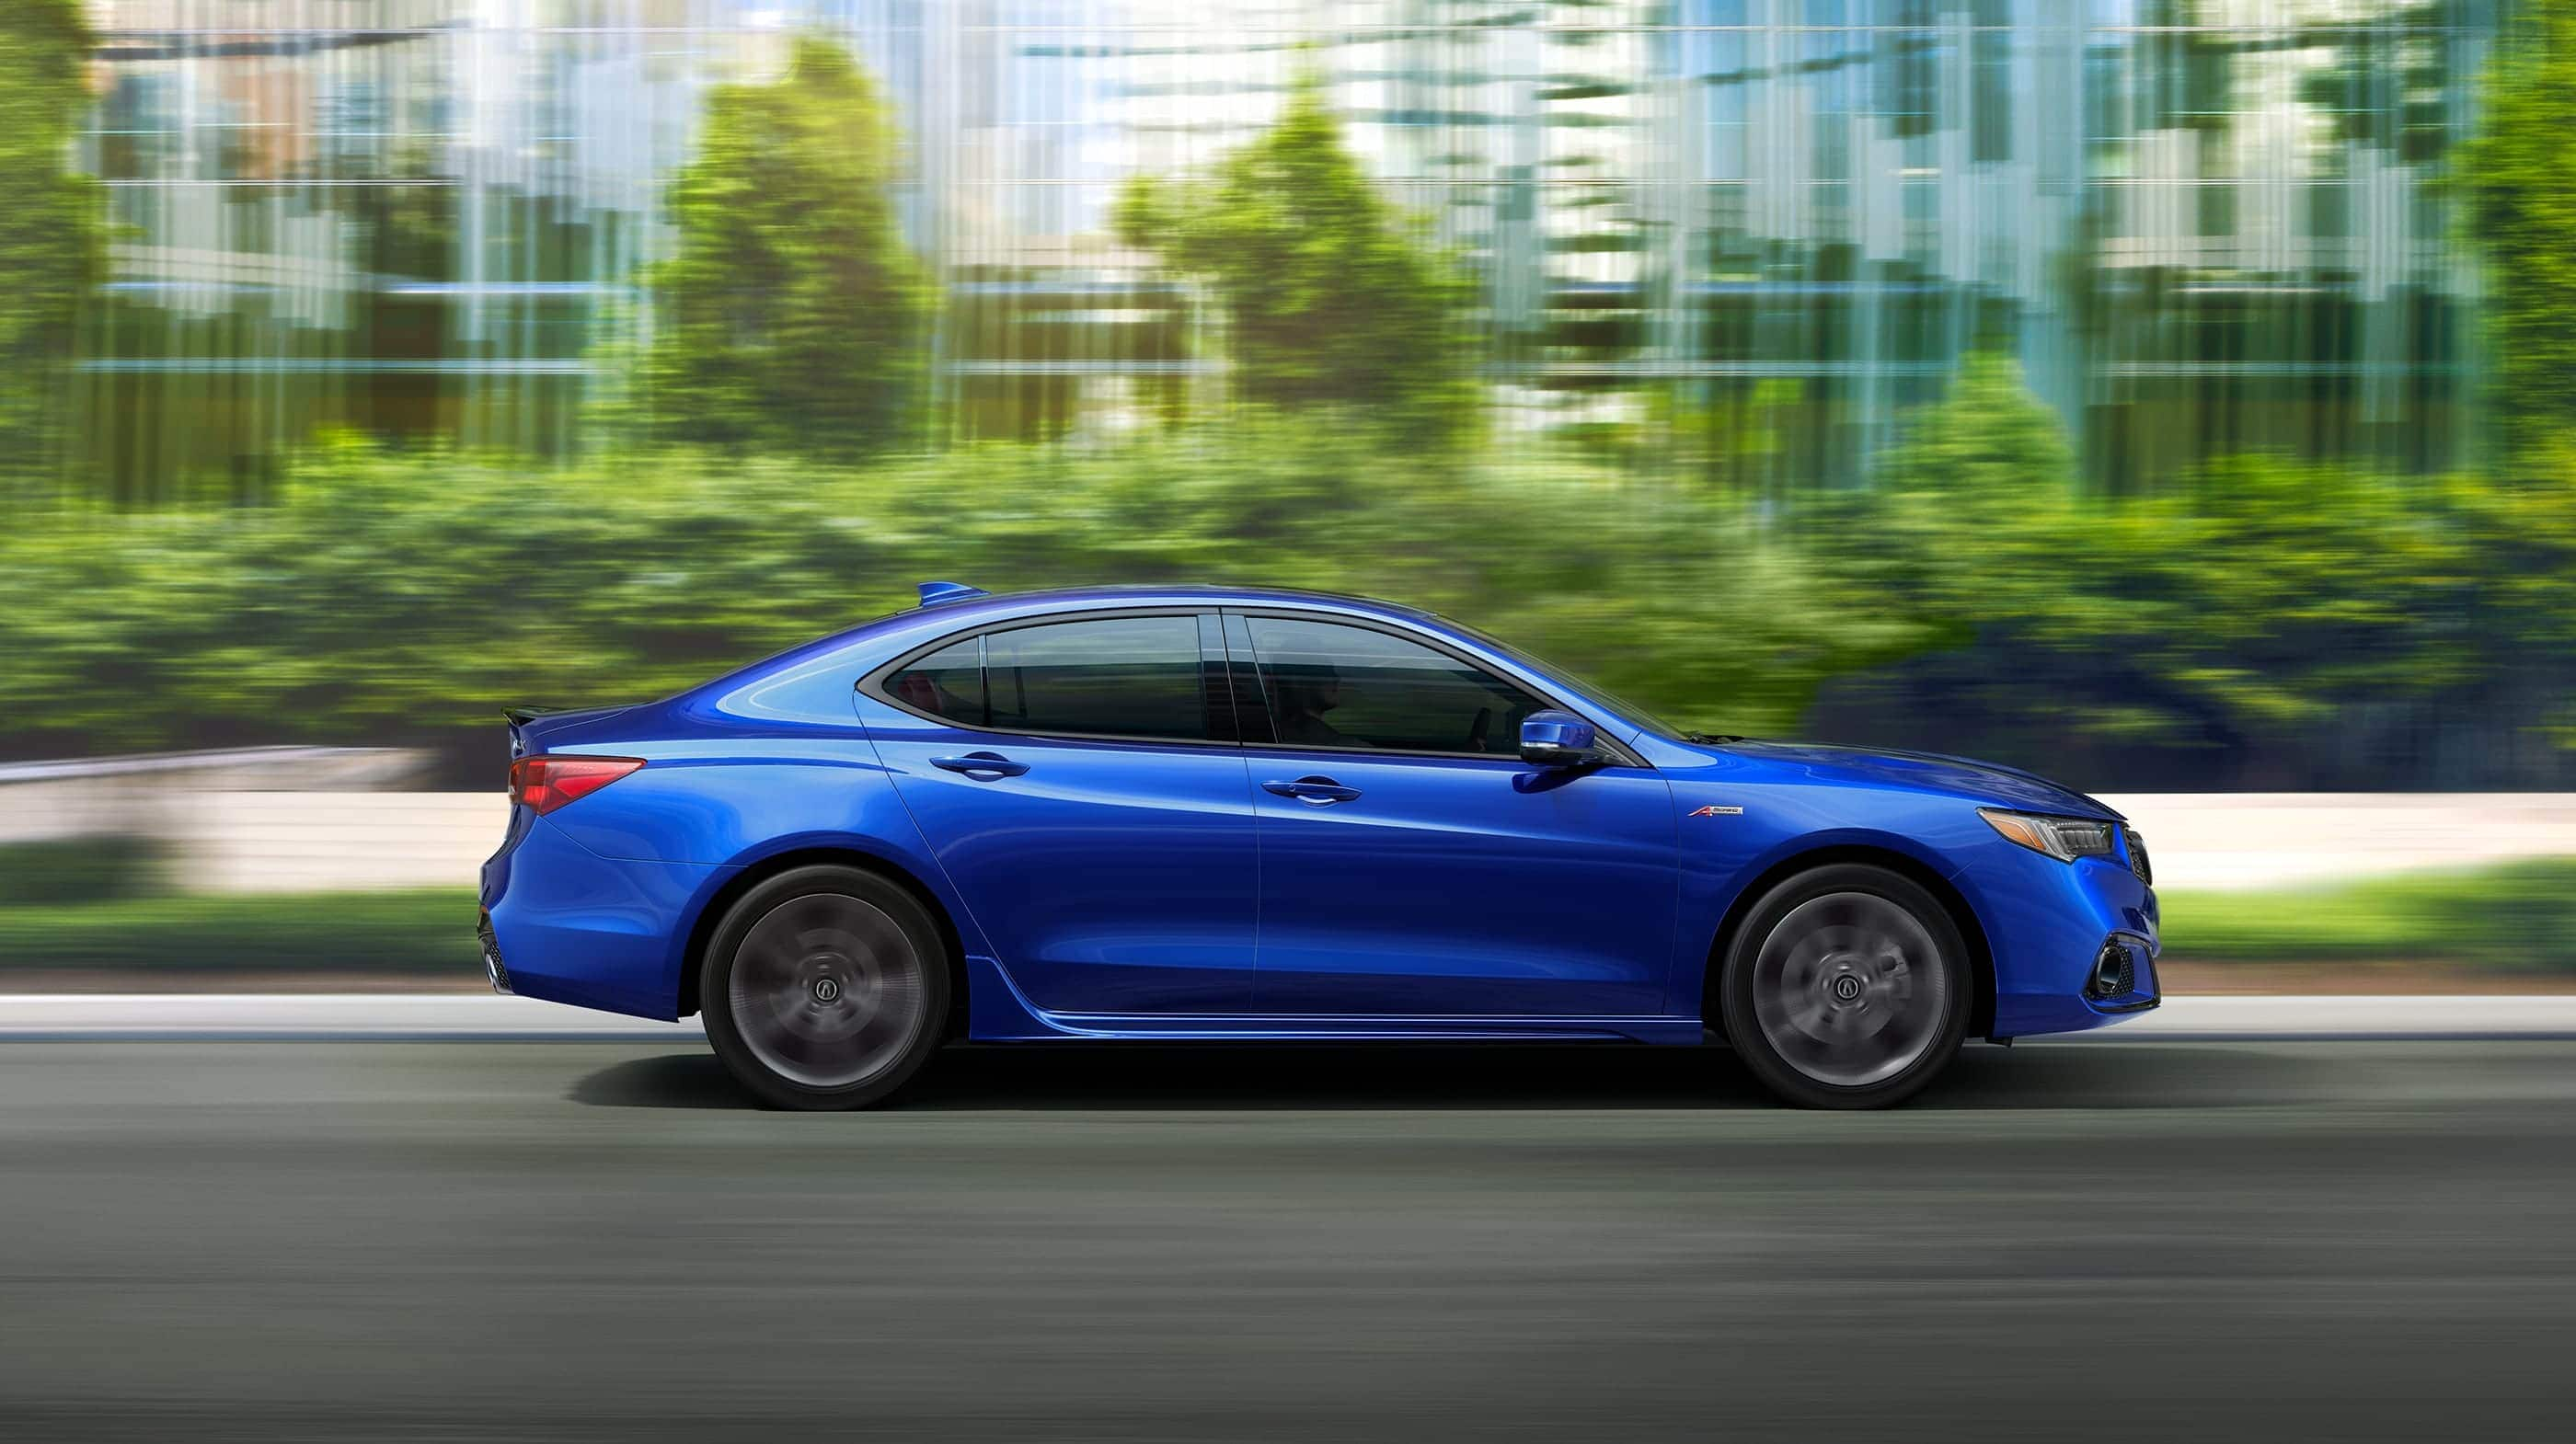 2020 Acura TLX A-Spec for Sale near Milwaukee, WI